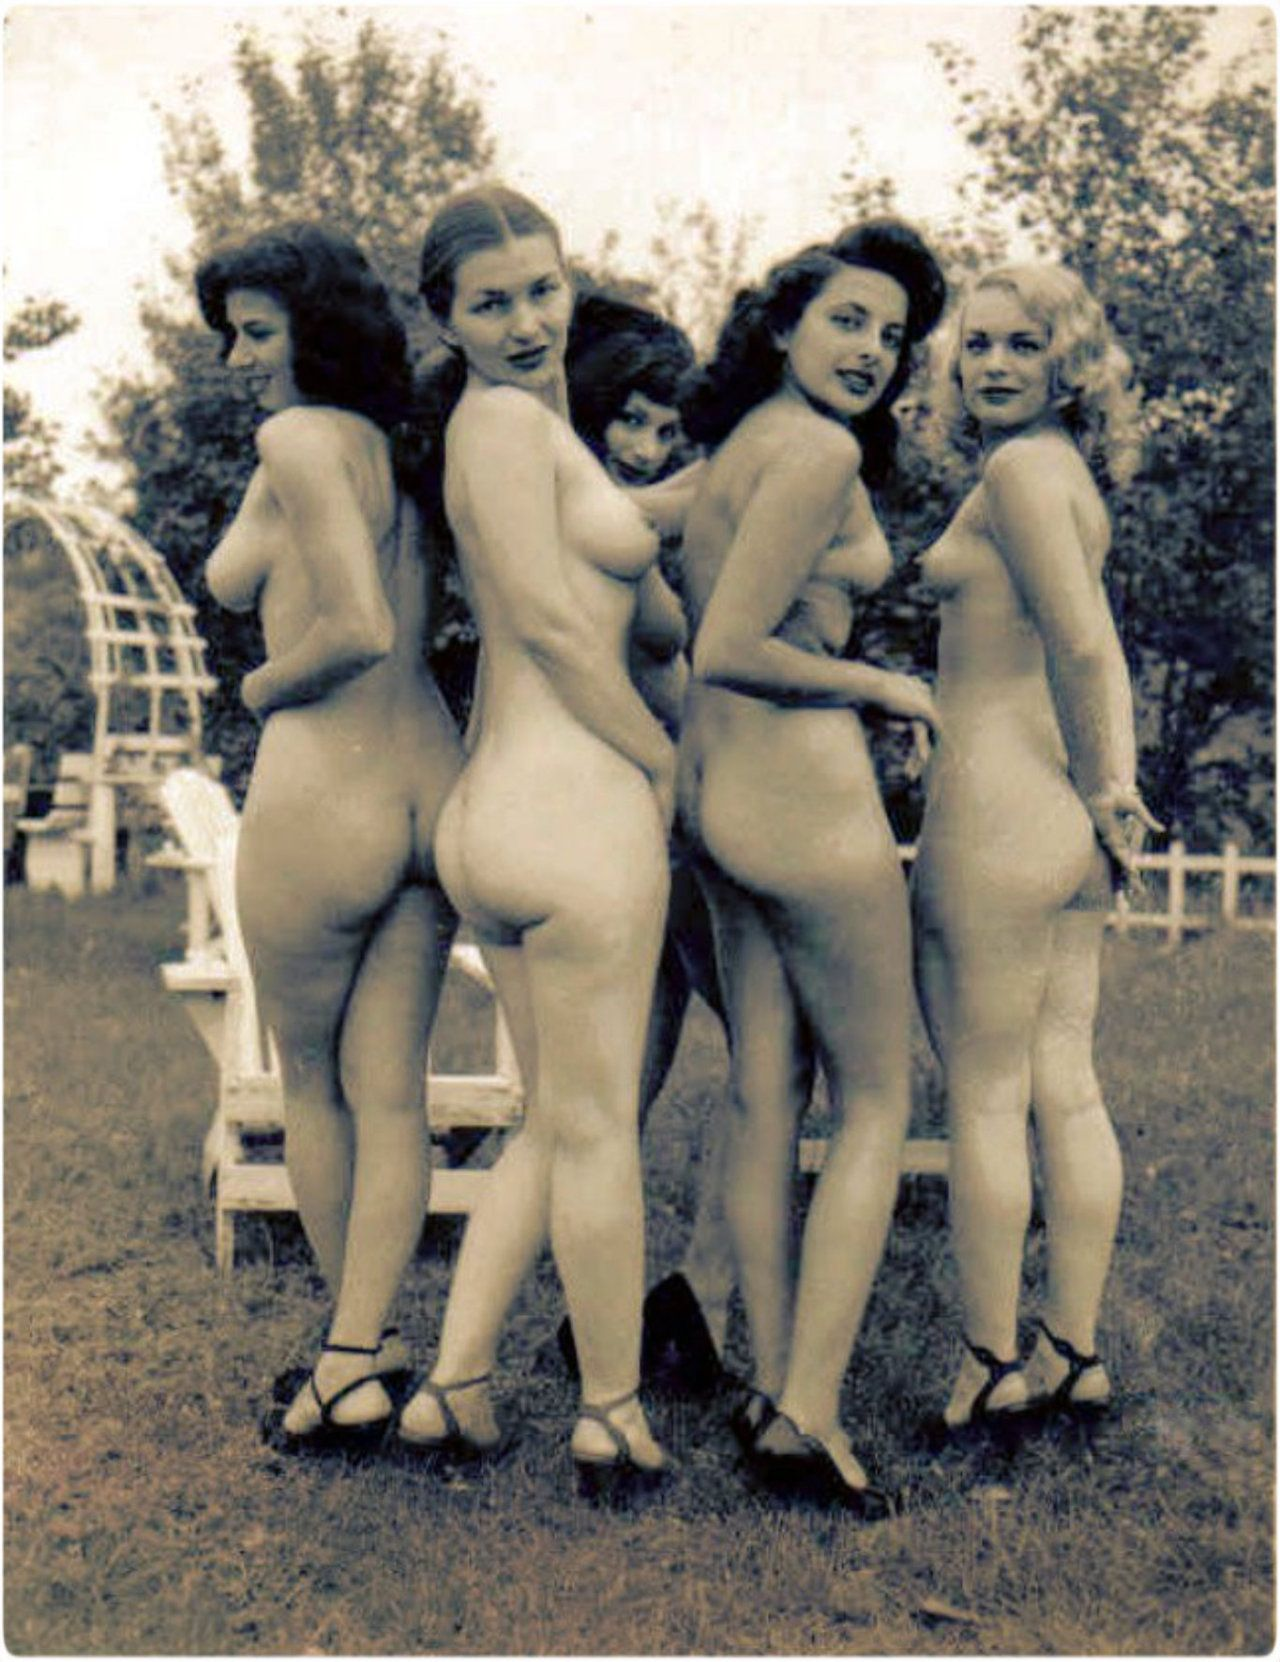 Hot vintage girls and naked women photos